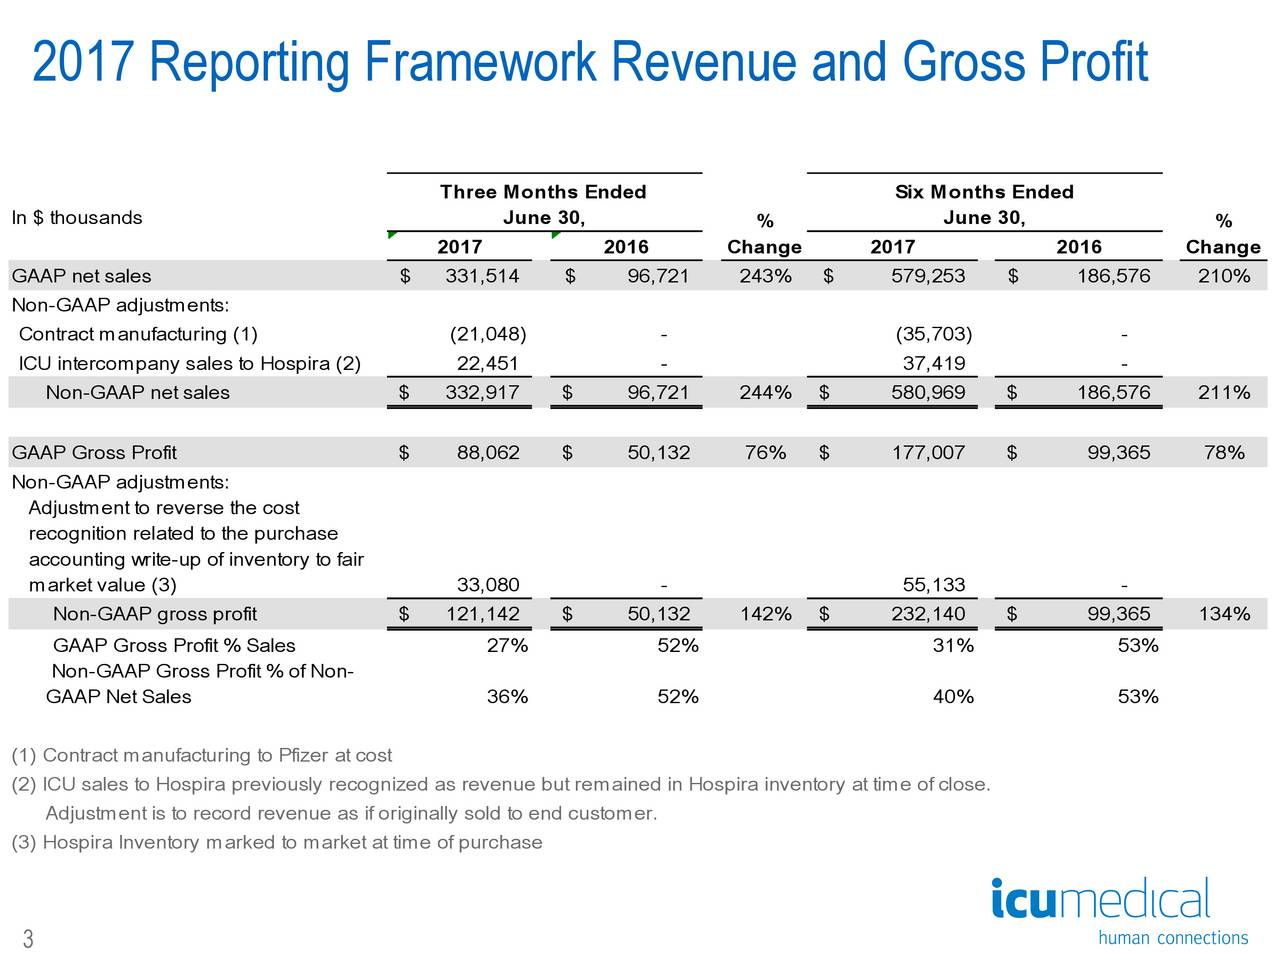 2017 Reporting Framework Revenue and Gross Profit